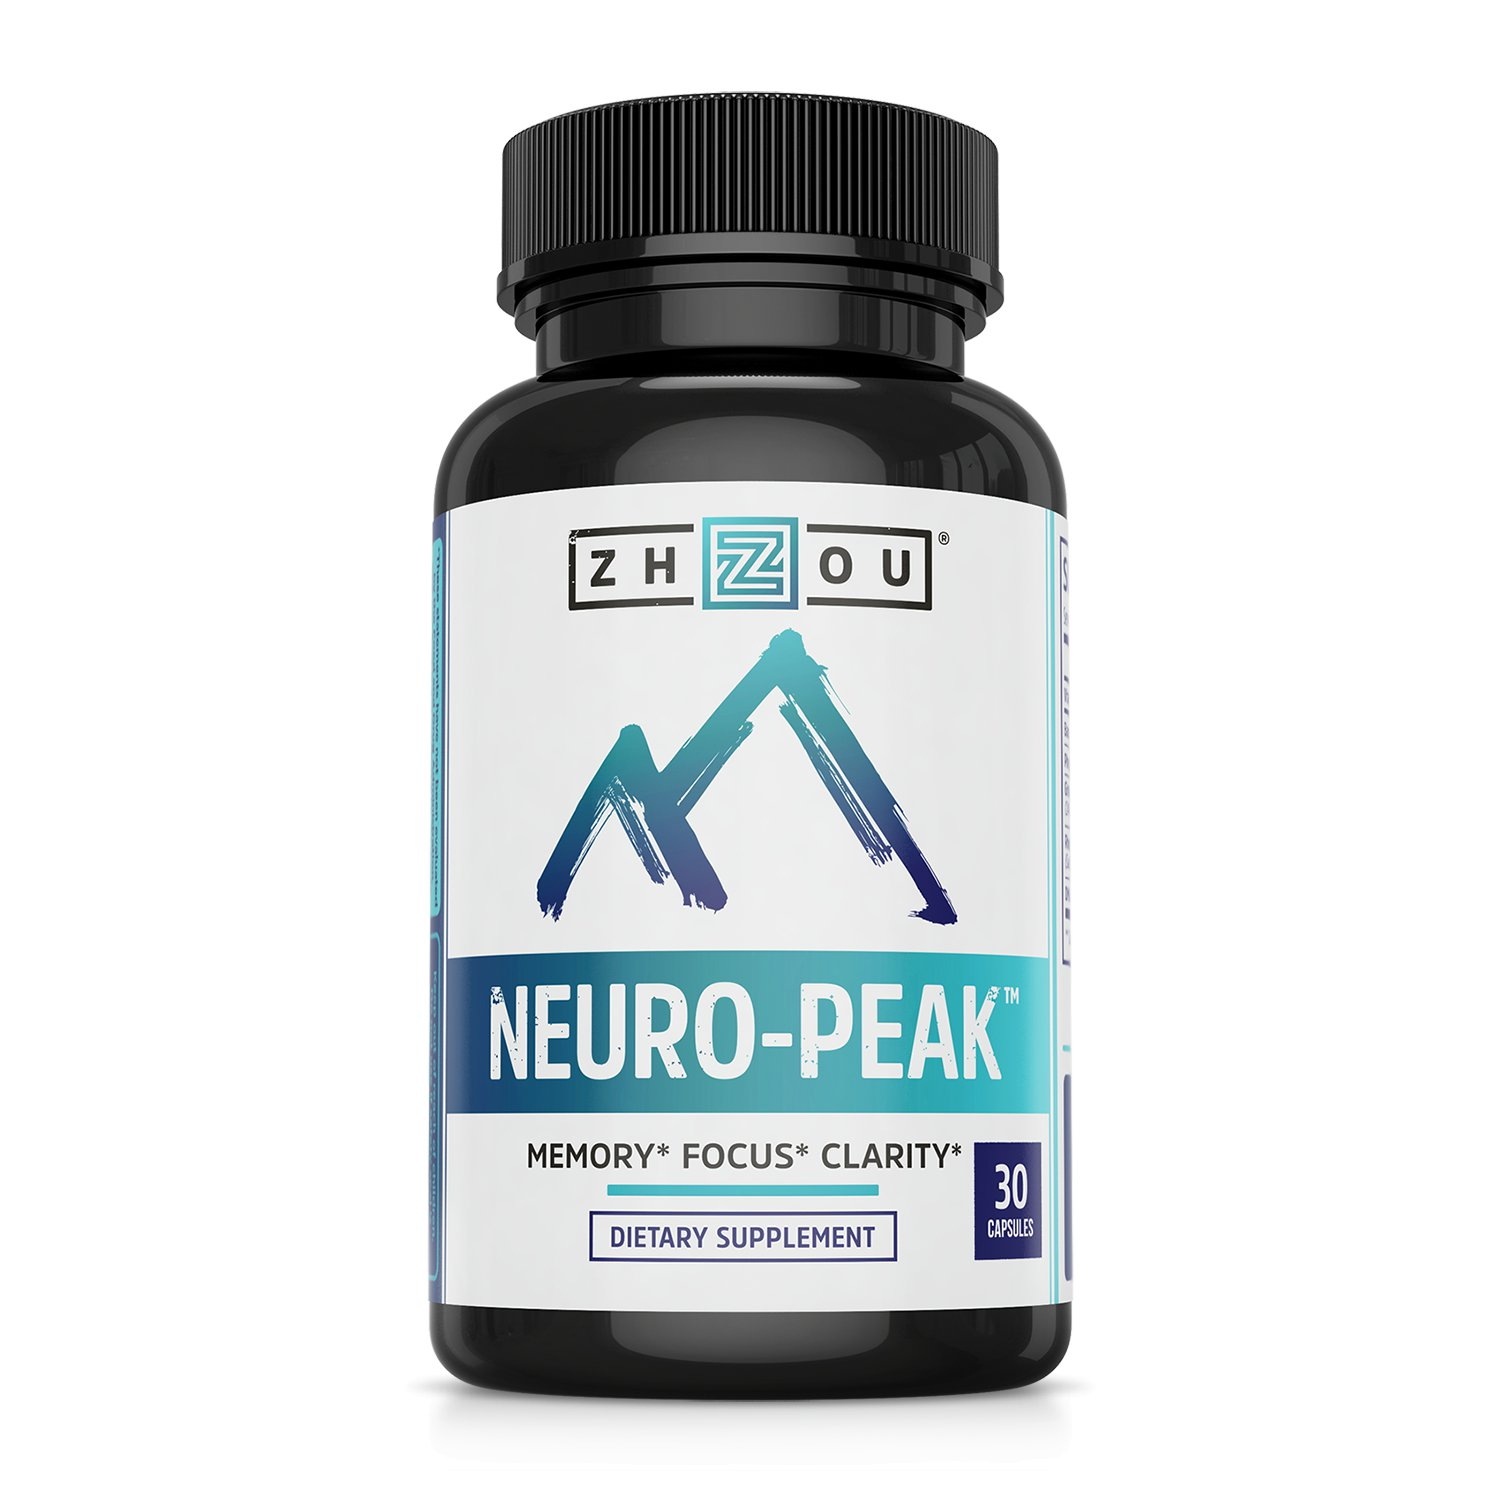 Memory, Focus and Clarity Supplement 30 Ct, Neuro-Peak by Zhou Nutrition